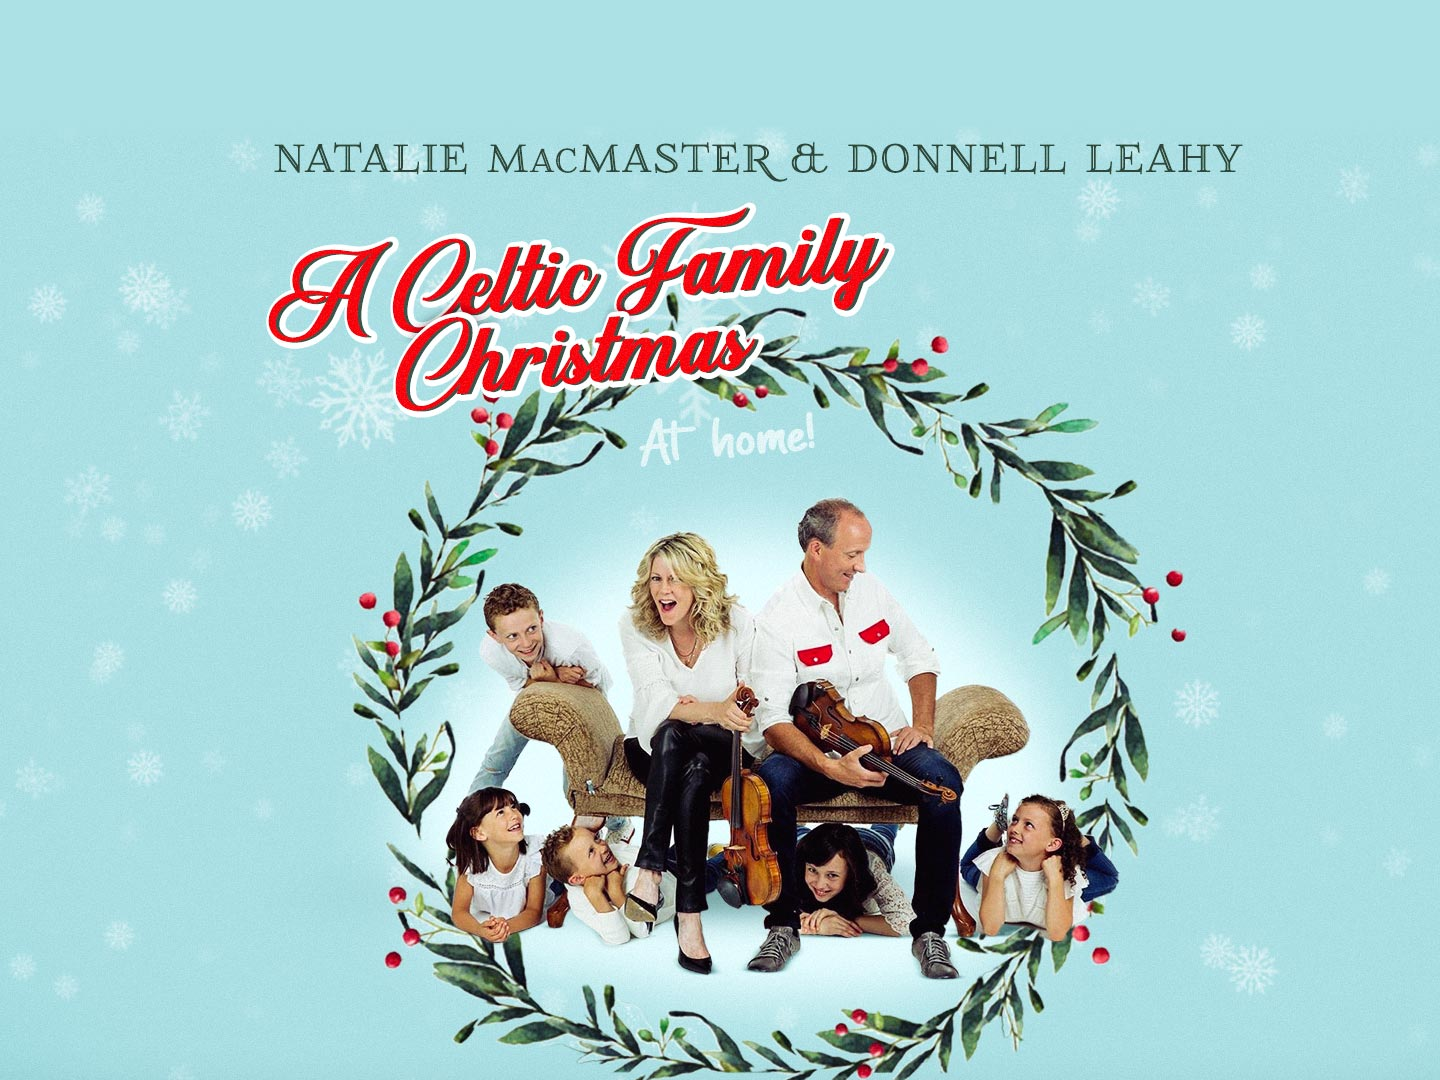 Natalie McMaster & Donnell Leahy - A Celtic Family Christmas At Home.